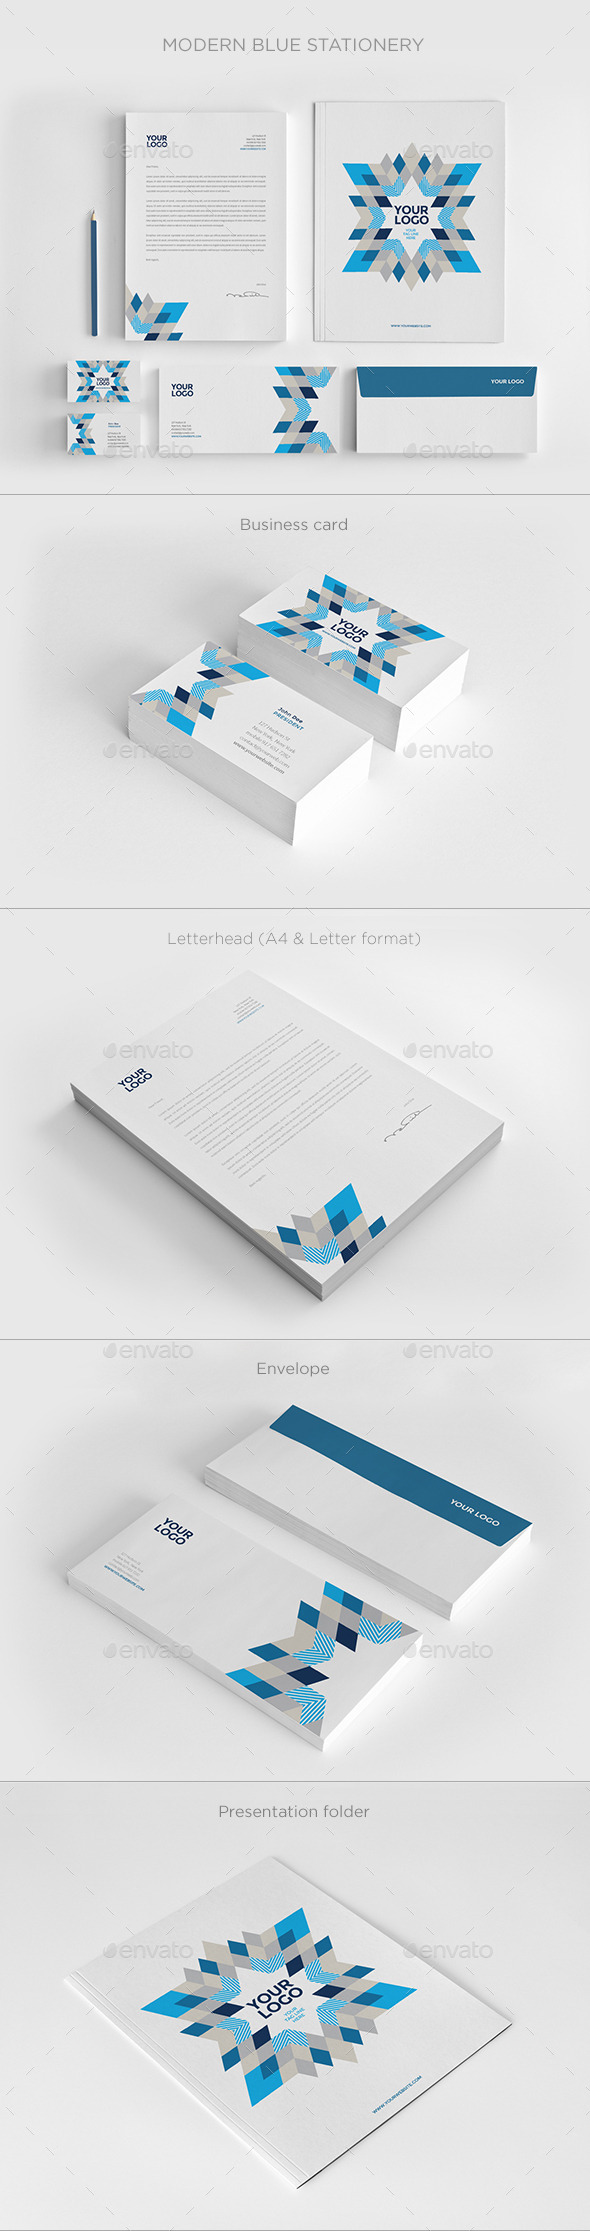 GraphicRiver Modern Blue Stationery 11860746